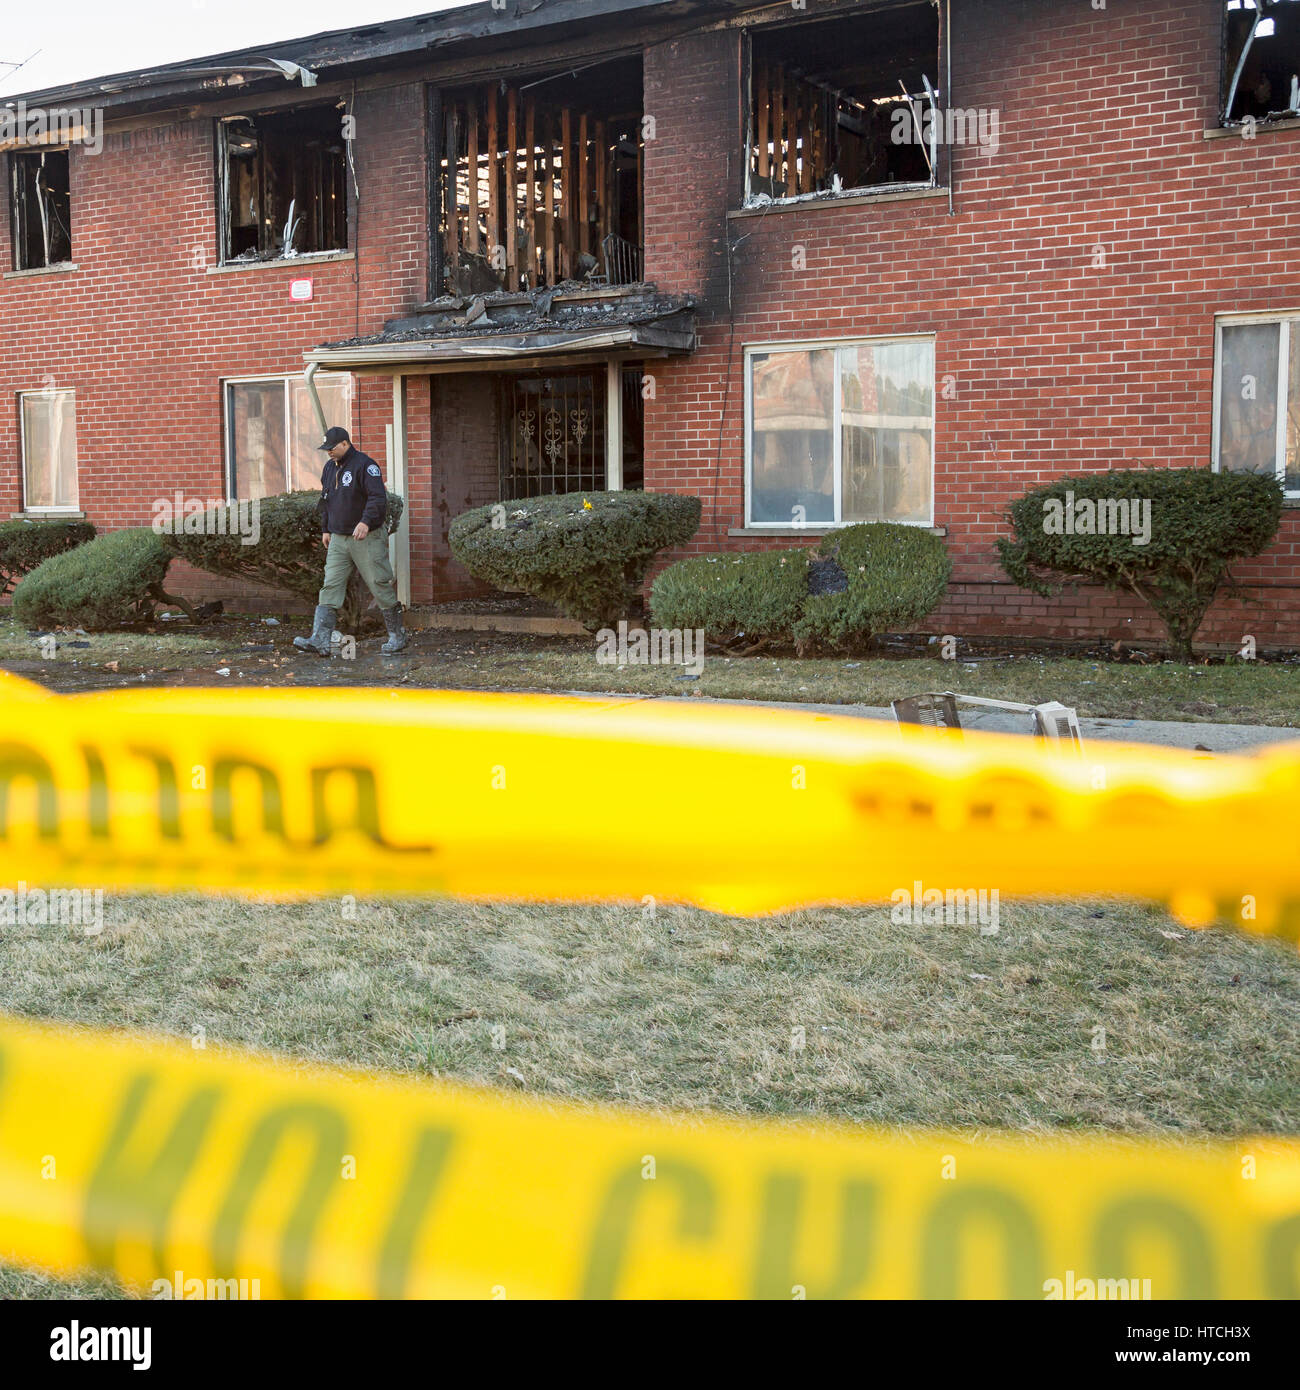 Detroit, Michigan - Police and fire department arson investigators at the scene of an apartment fire that killed - Stock Image